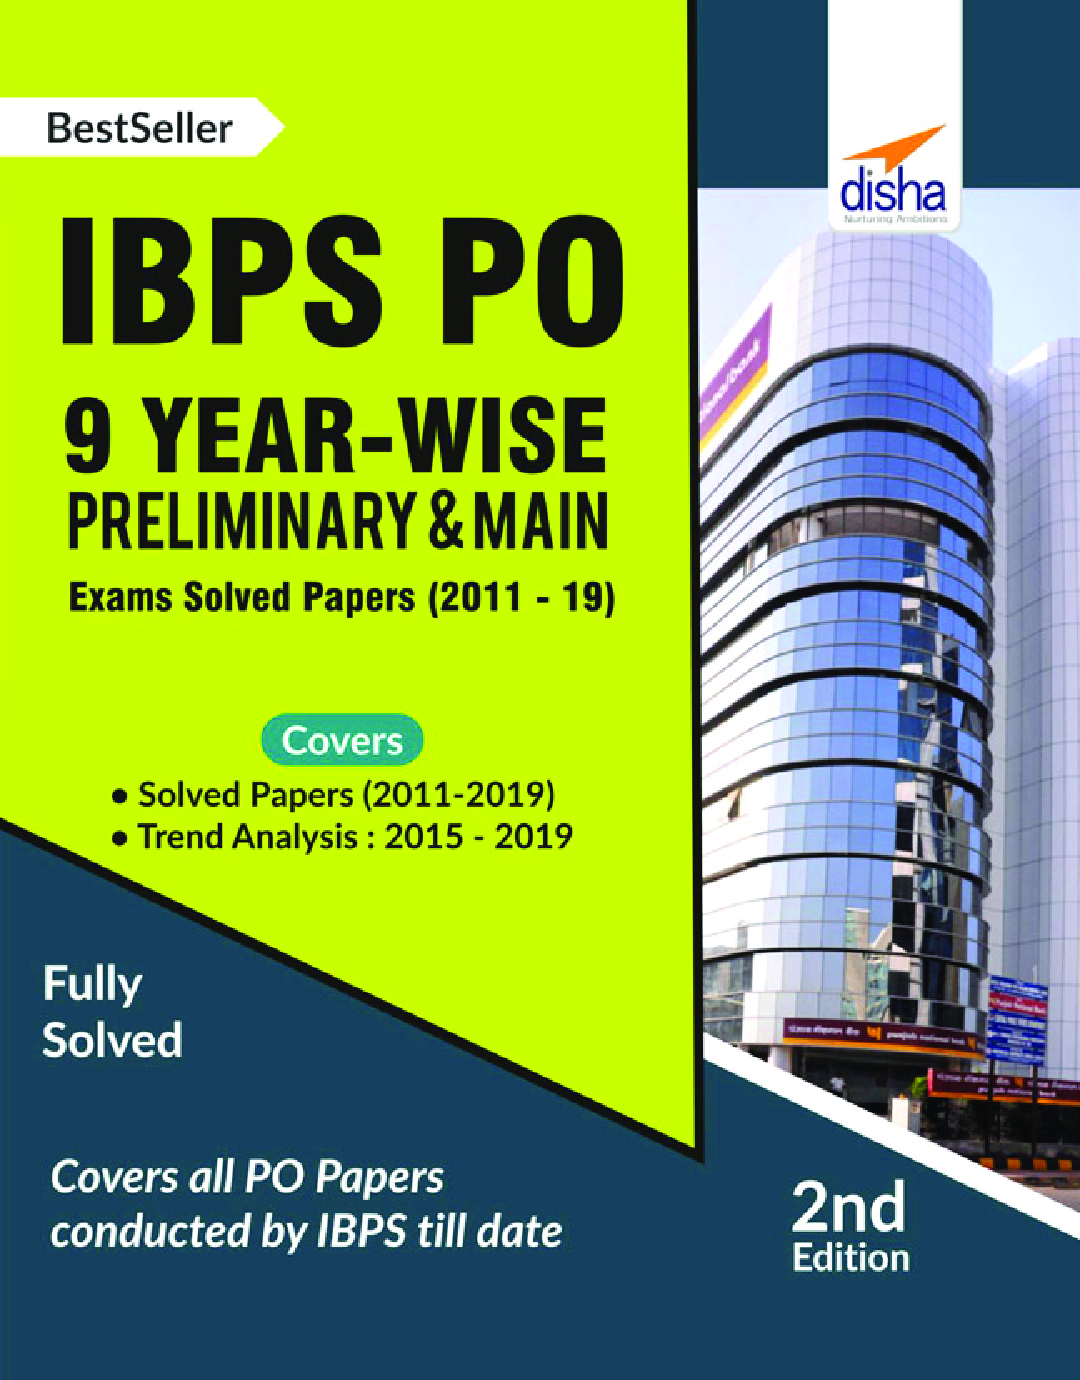 IBPS PO 9 Year-Wise Preliminary & Main Exams Solved Papers (2011-19) - Page 1